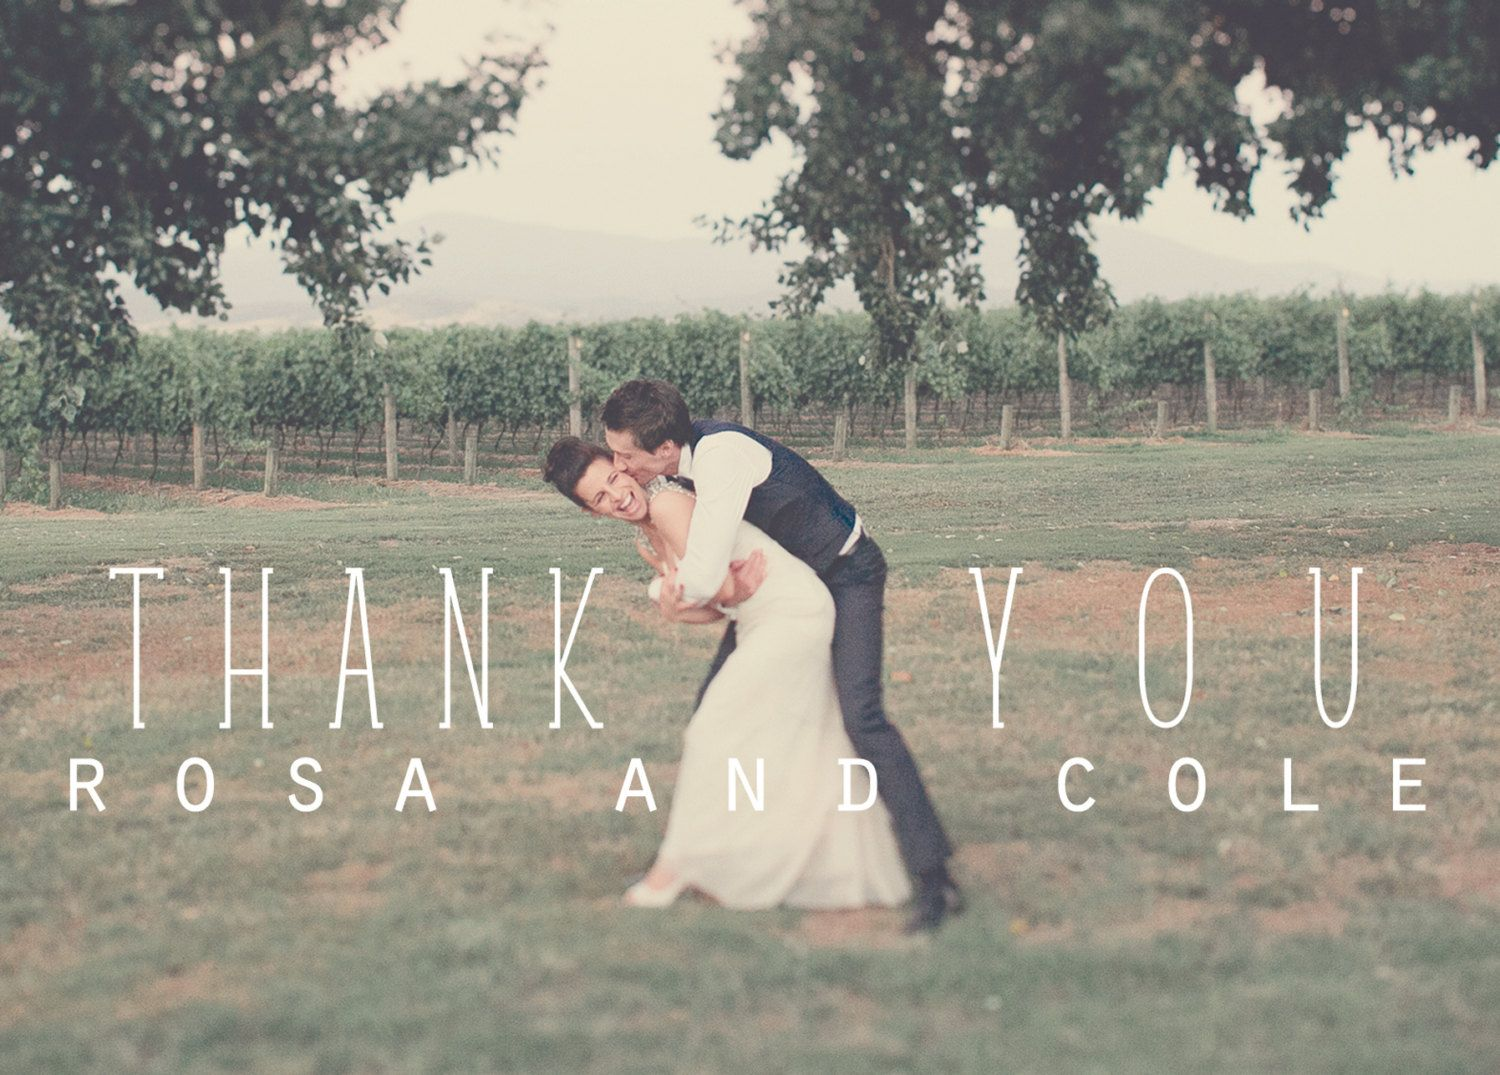 second wedding invitation verbiage%0A Wedding Thank You Postcards  Rustic